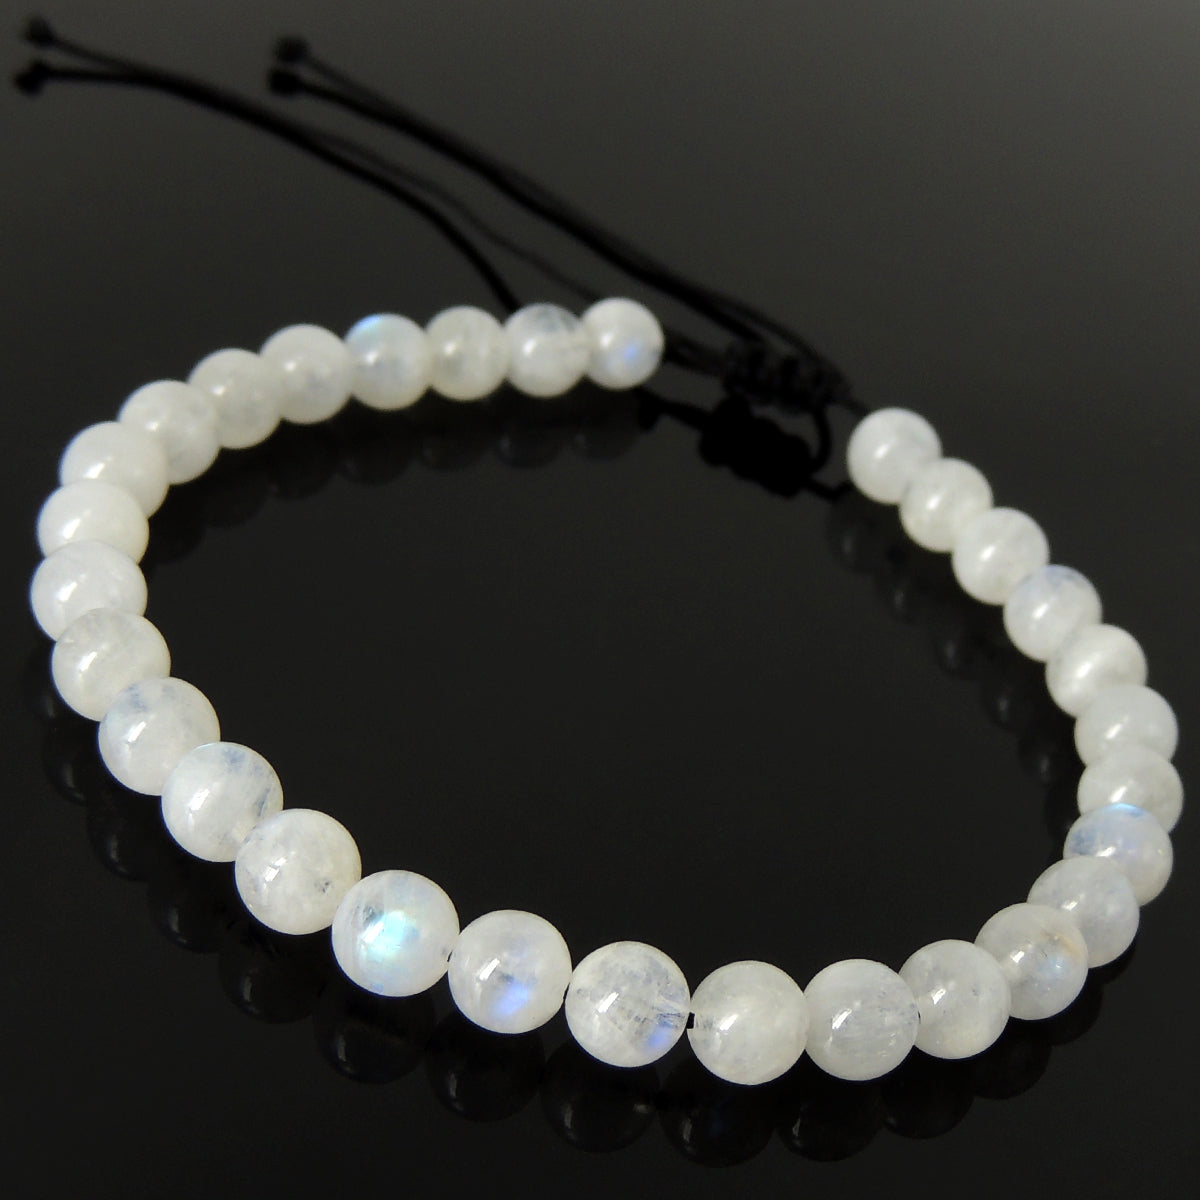 Handmade Braided Healing Gemstone Bracelet - 6mm Moonstone Crystal & Adjustable Drawstring BR1614